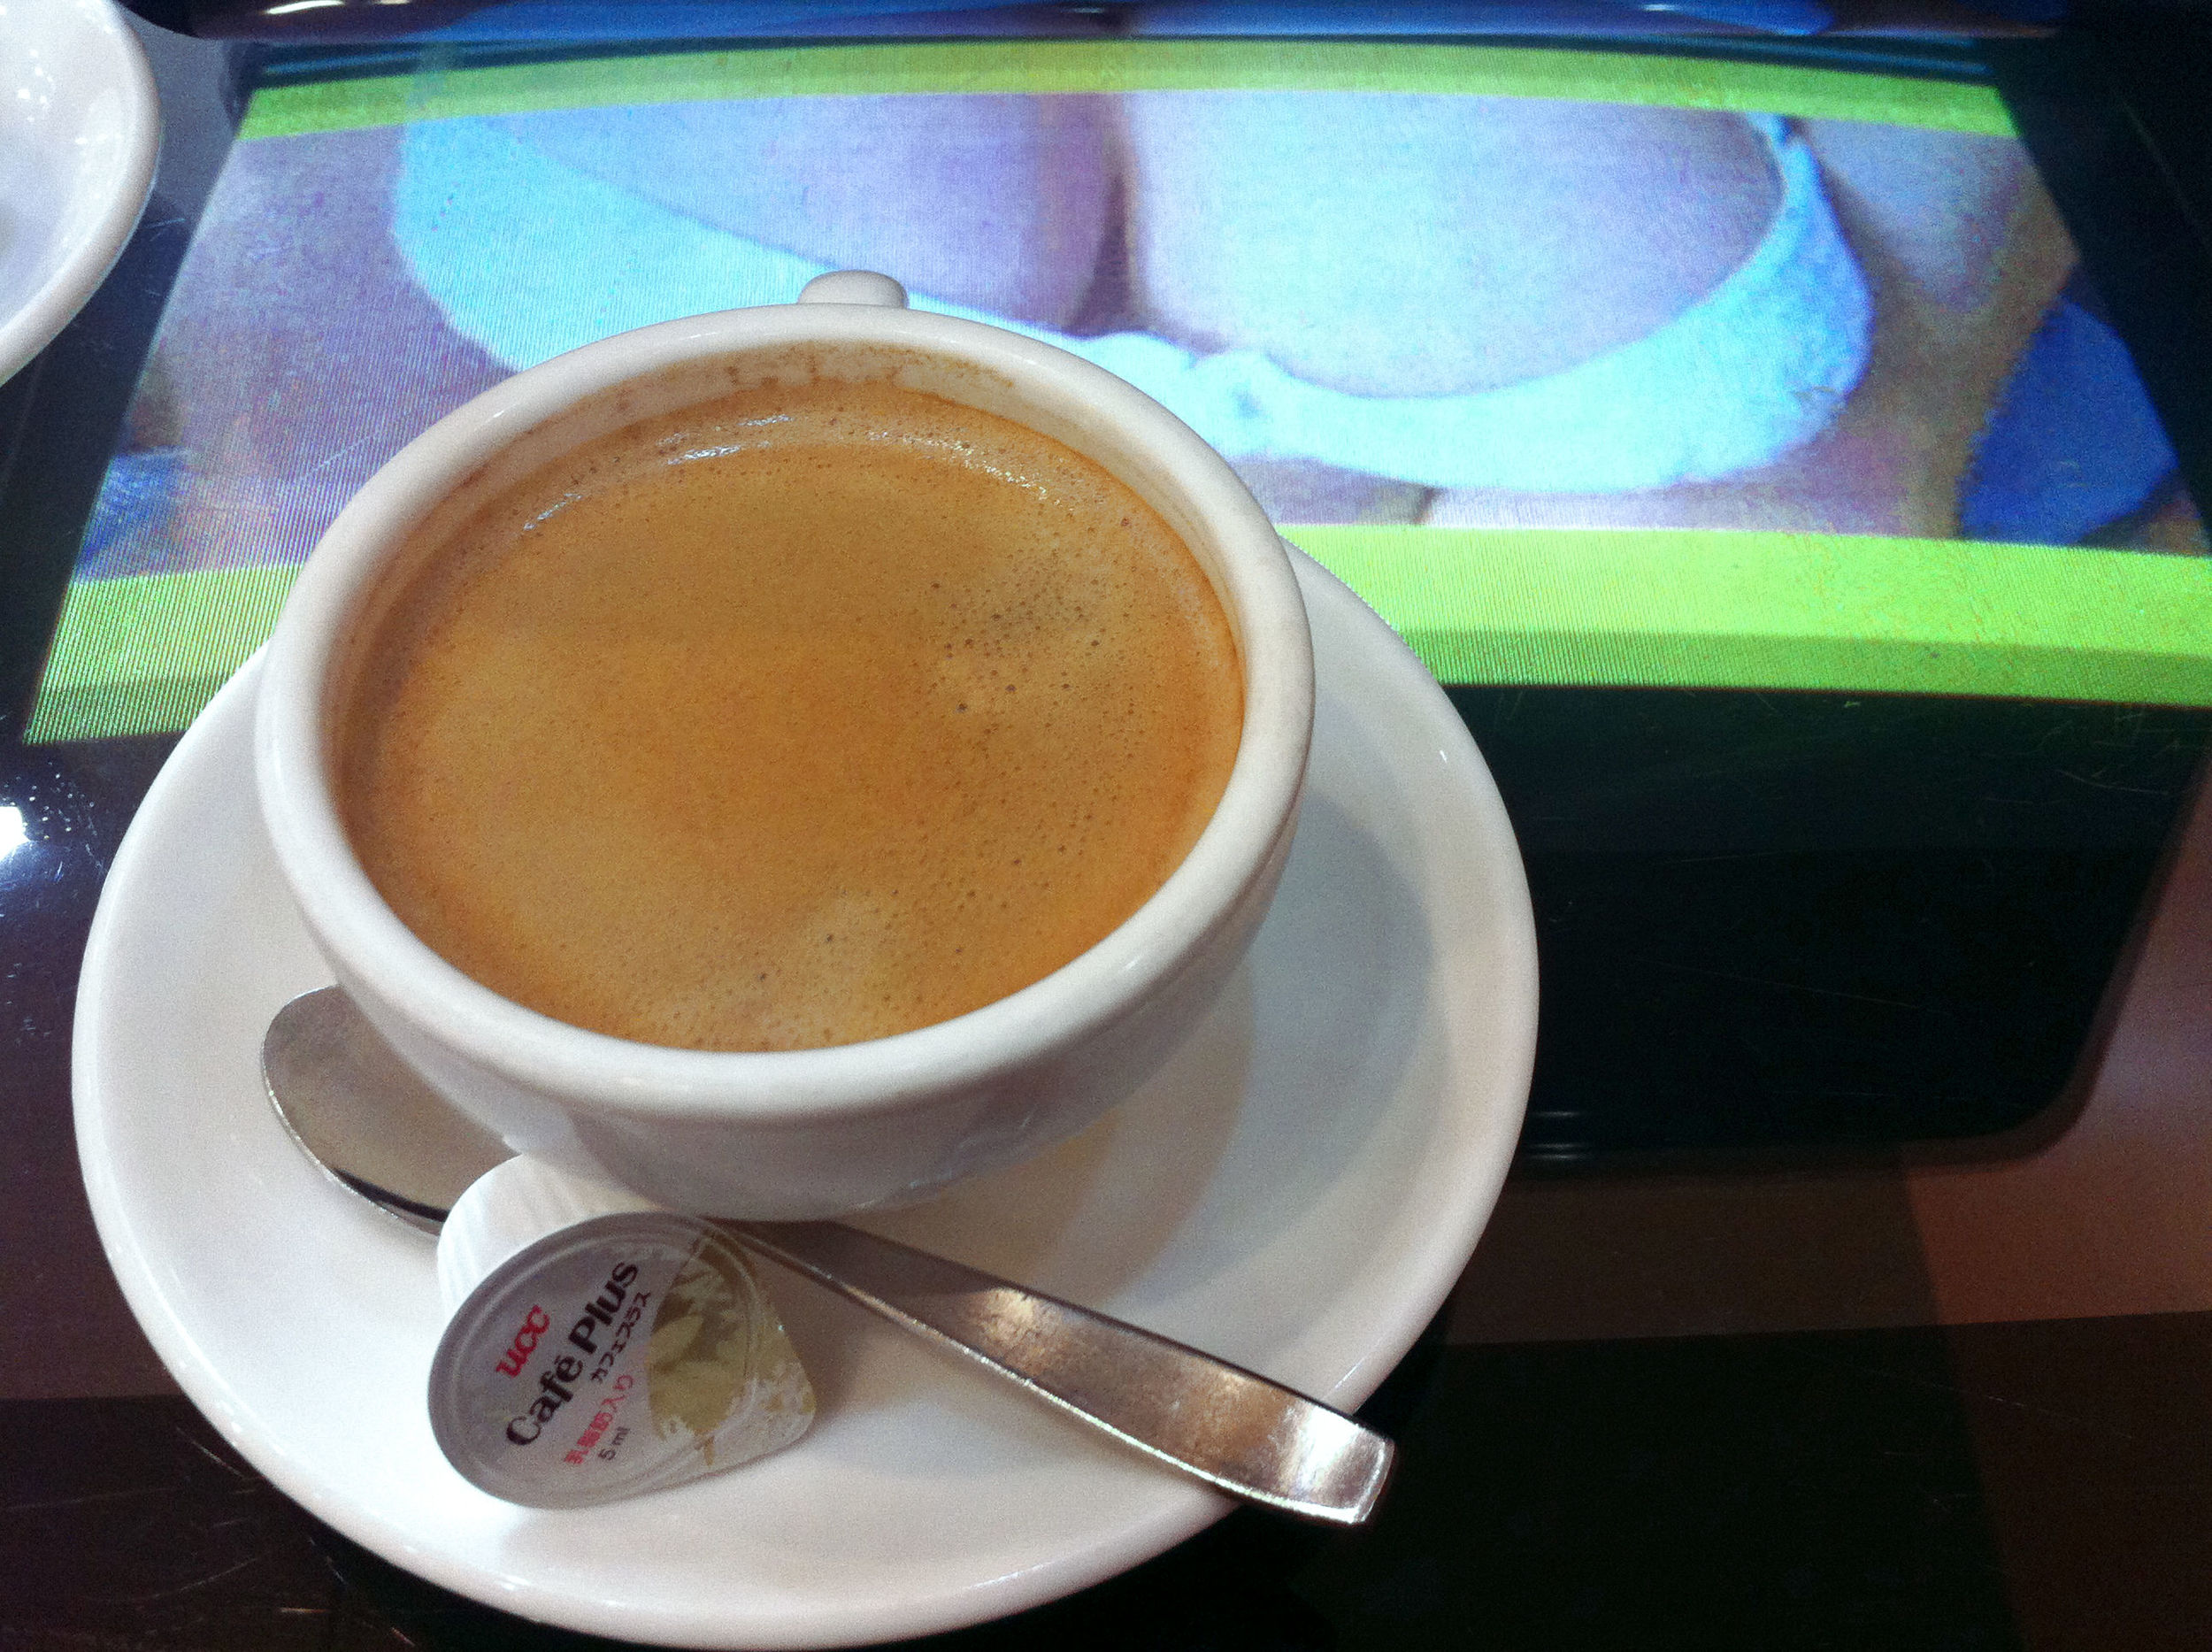 Kind of hard to concentrate on drinking my coffee with boobs and panty shots on continuous video loop under the glass tabletop...